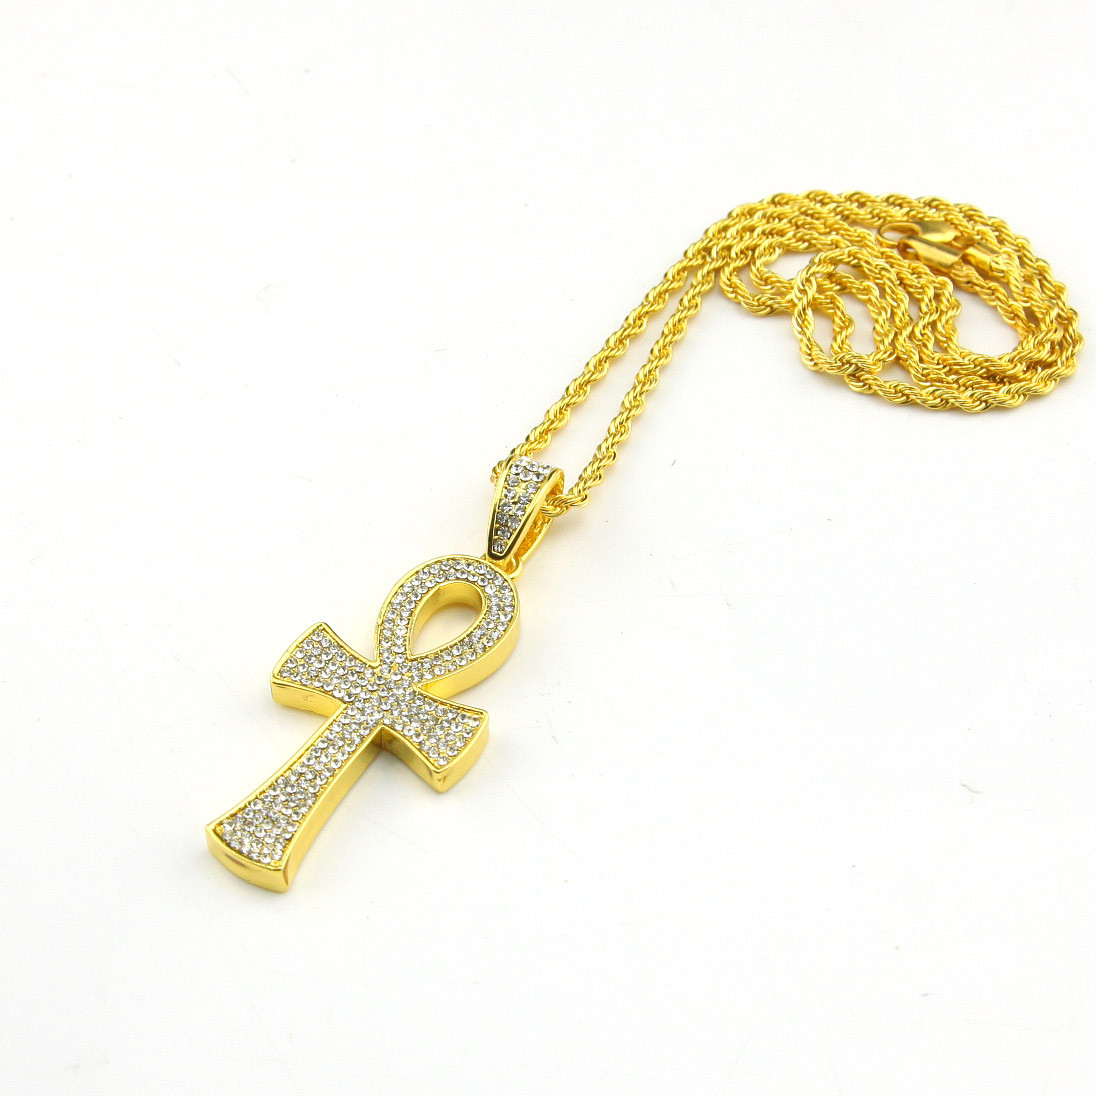 Mens golden egyptian ankh pendant hip hop 24 rope chain in pendants mens golden egyptian ankh pendant hip hop 24 rope chain in pendants from jewelry accessories on aliexpress alibaba group mozeypictures Image collections